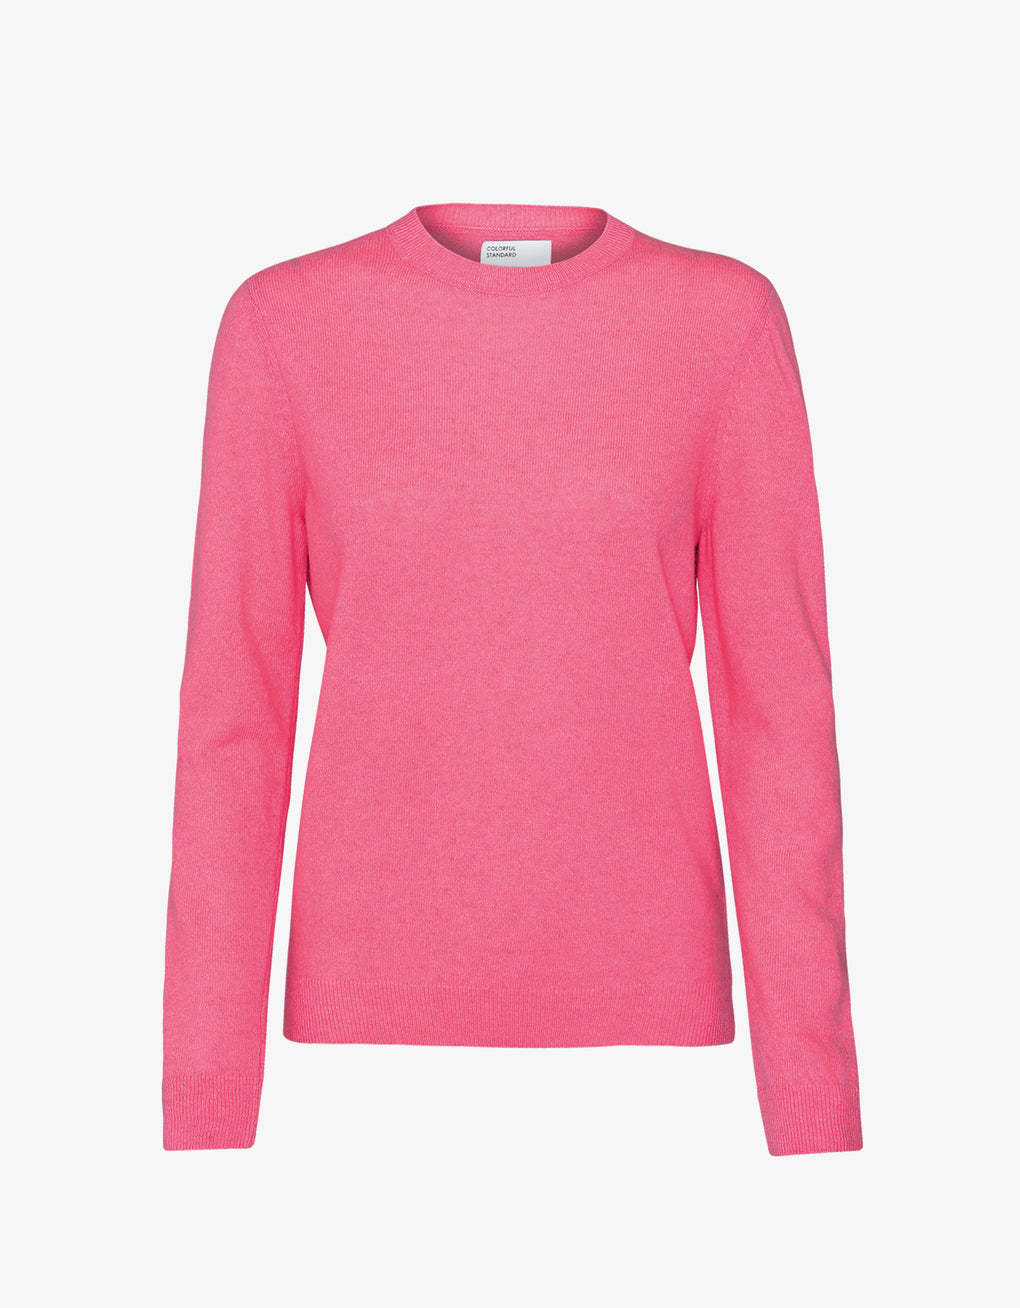 Colorful Standard Women Merino Wool Crew Women Merino Crewneck Bubblegum Pink